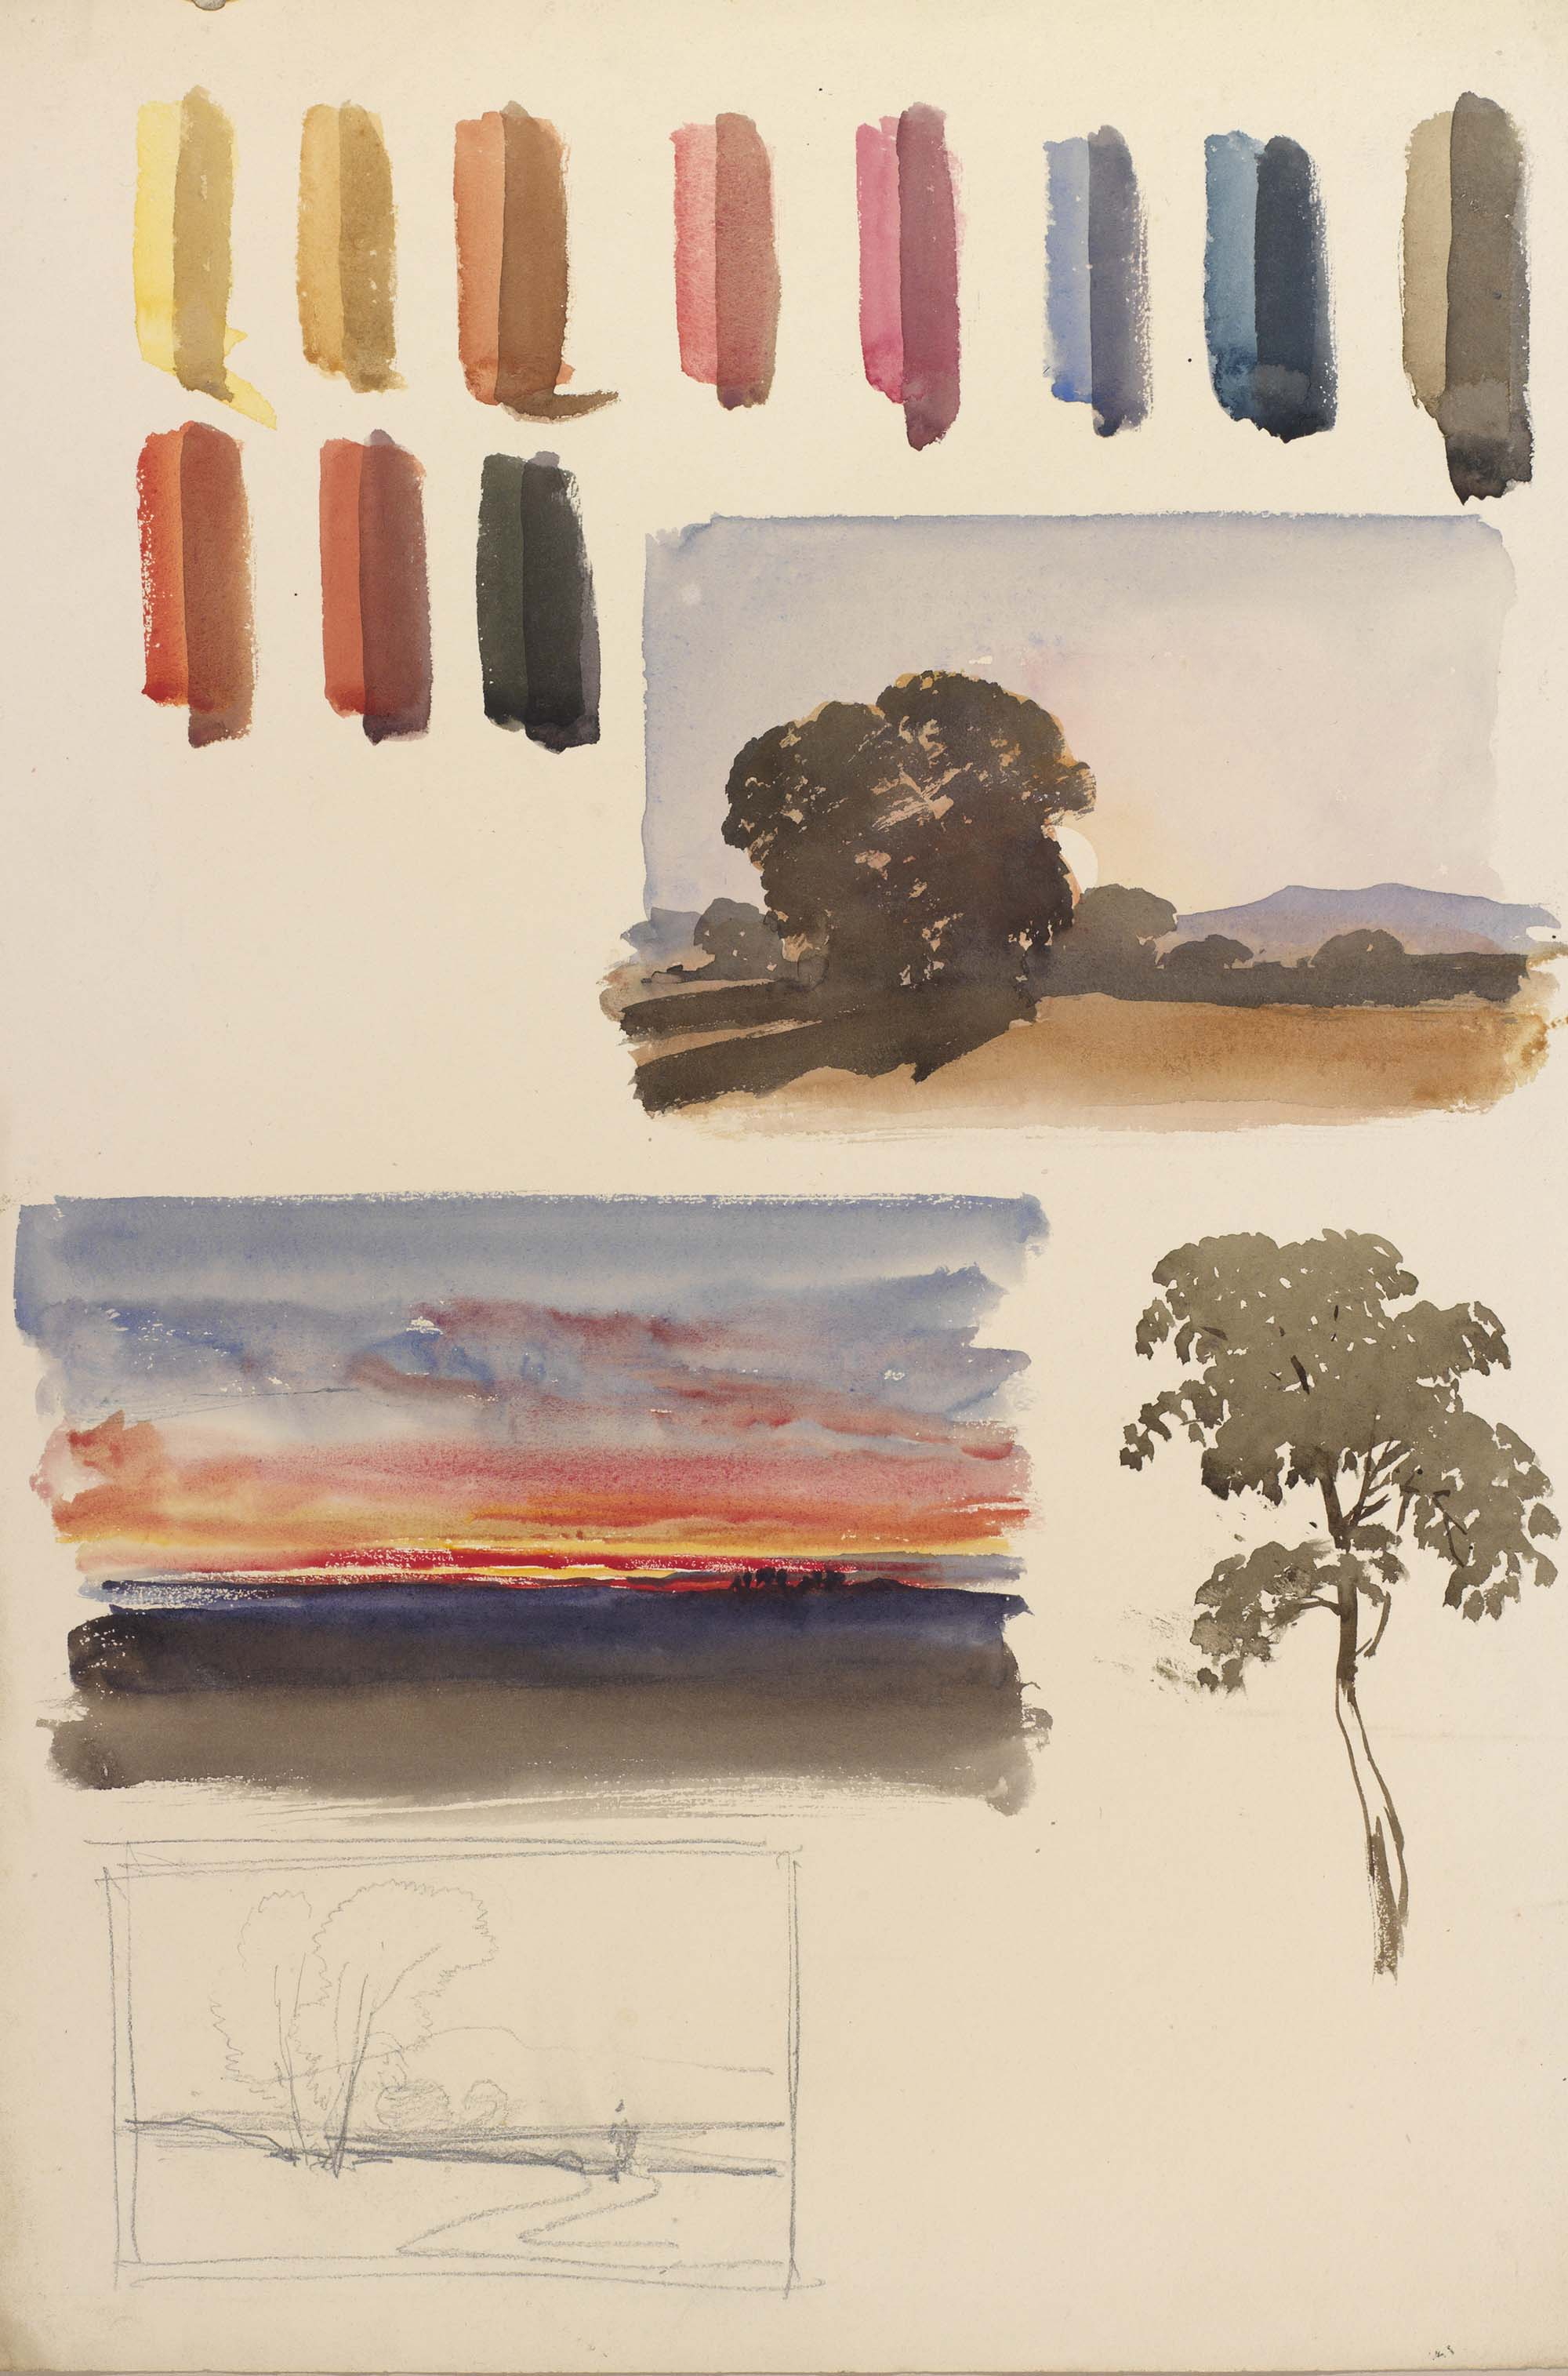 a sheet of watercolours and practice landscapes